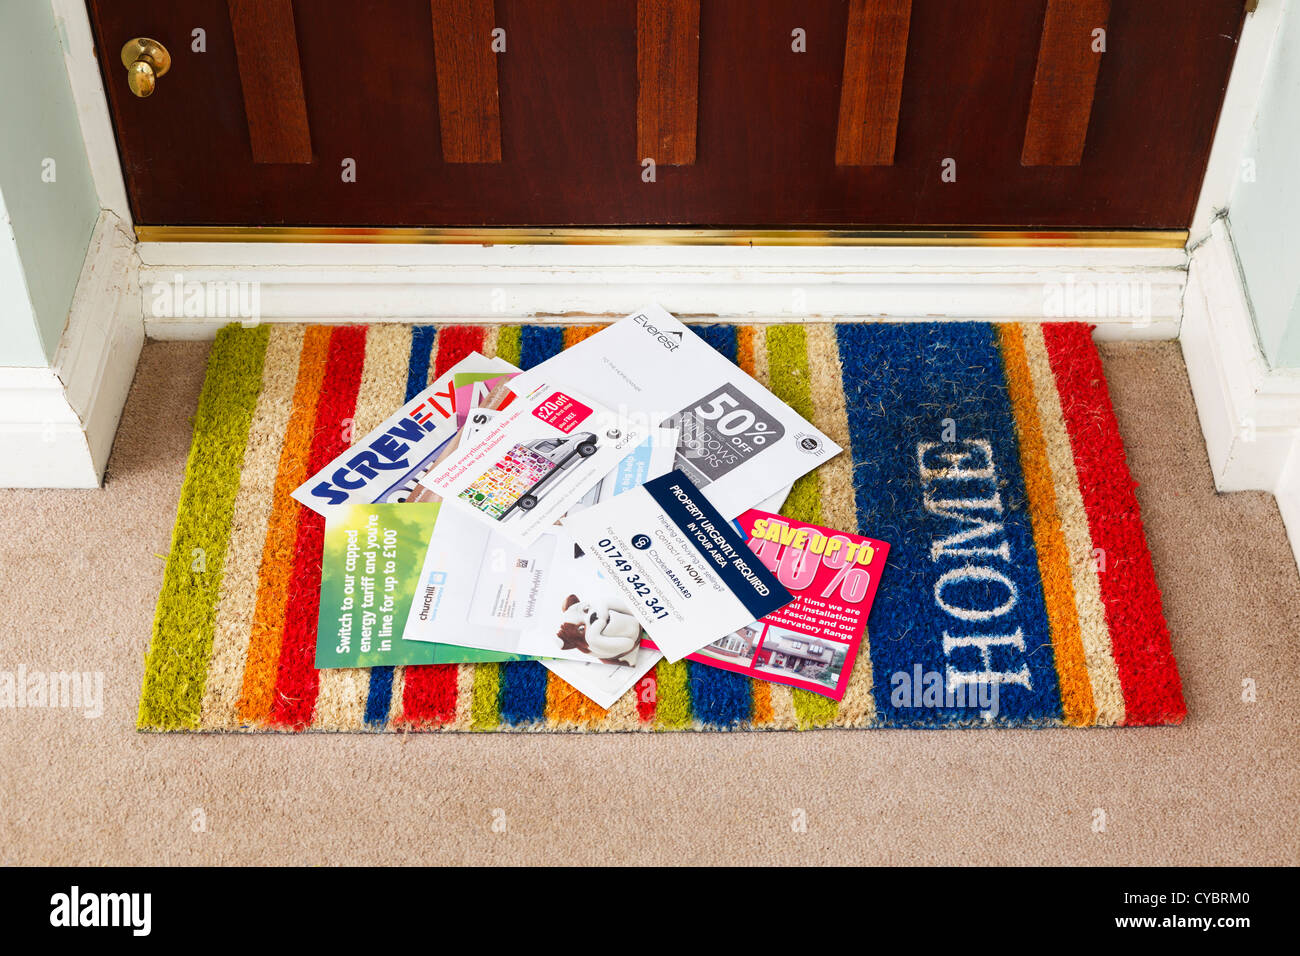 Junk mail, on a doormat in a house, UK - details changed for security - Stock Image